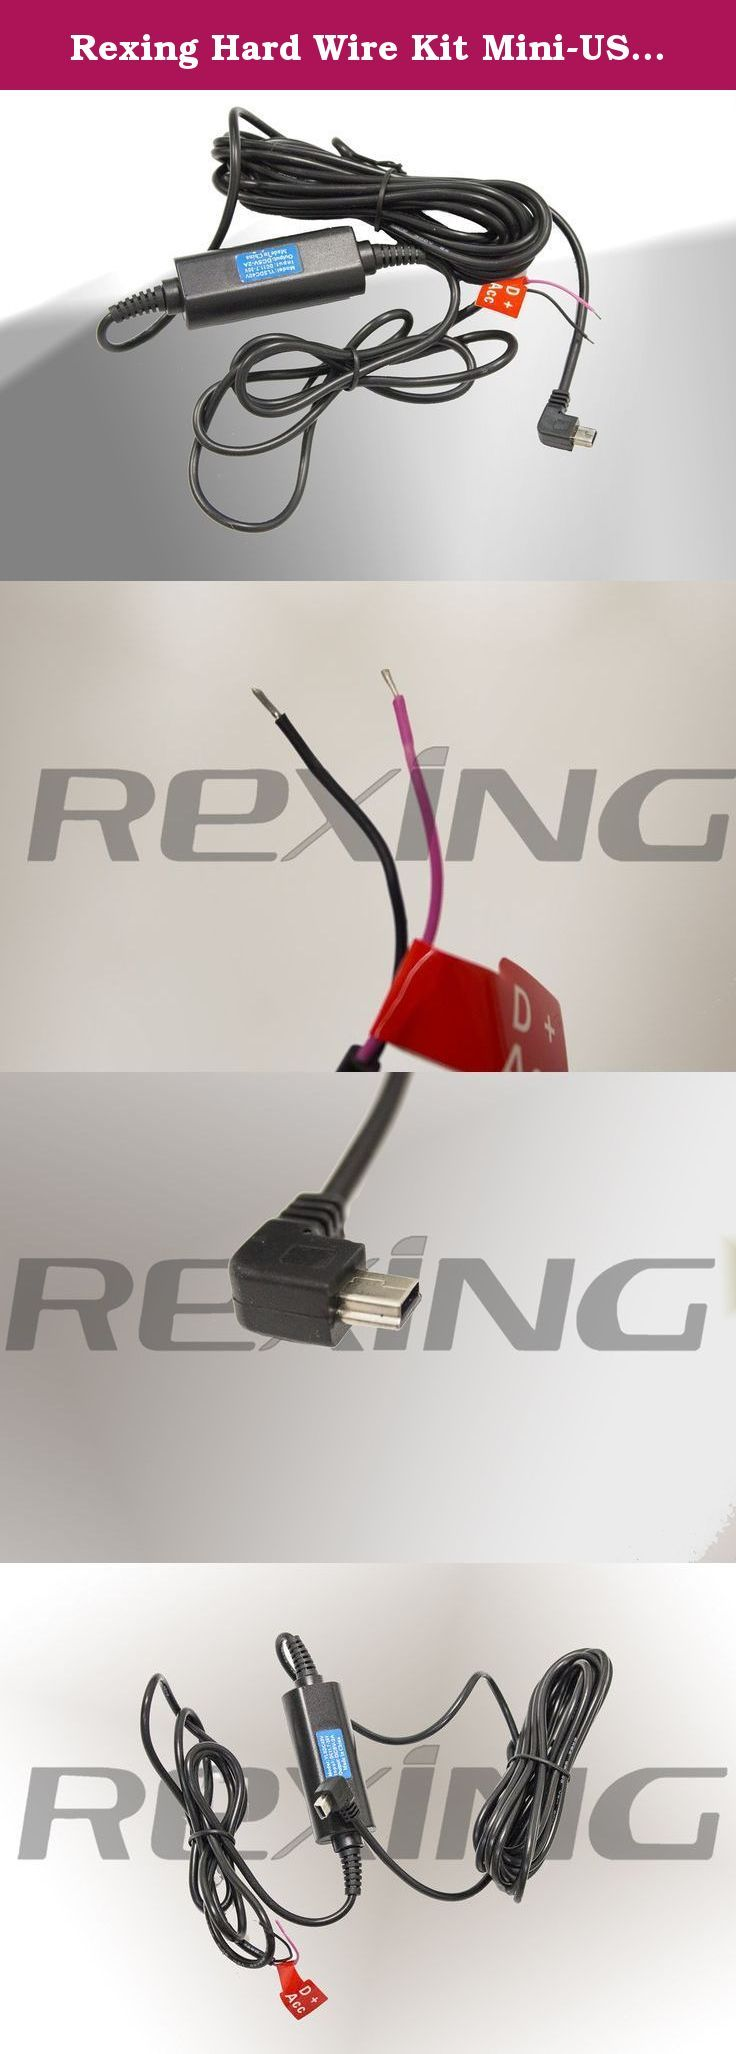 Rexing Hard Wire Kit Mini Usb Port For Rexin Car Fuse Box To Dash Cam Input Dc 117v 30v Output 5v 2a Length 13ft You May Need A Blade